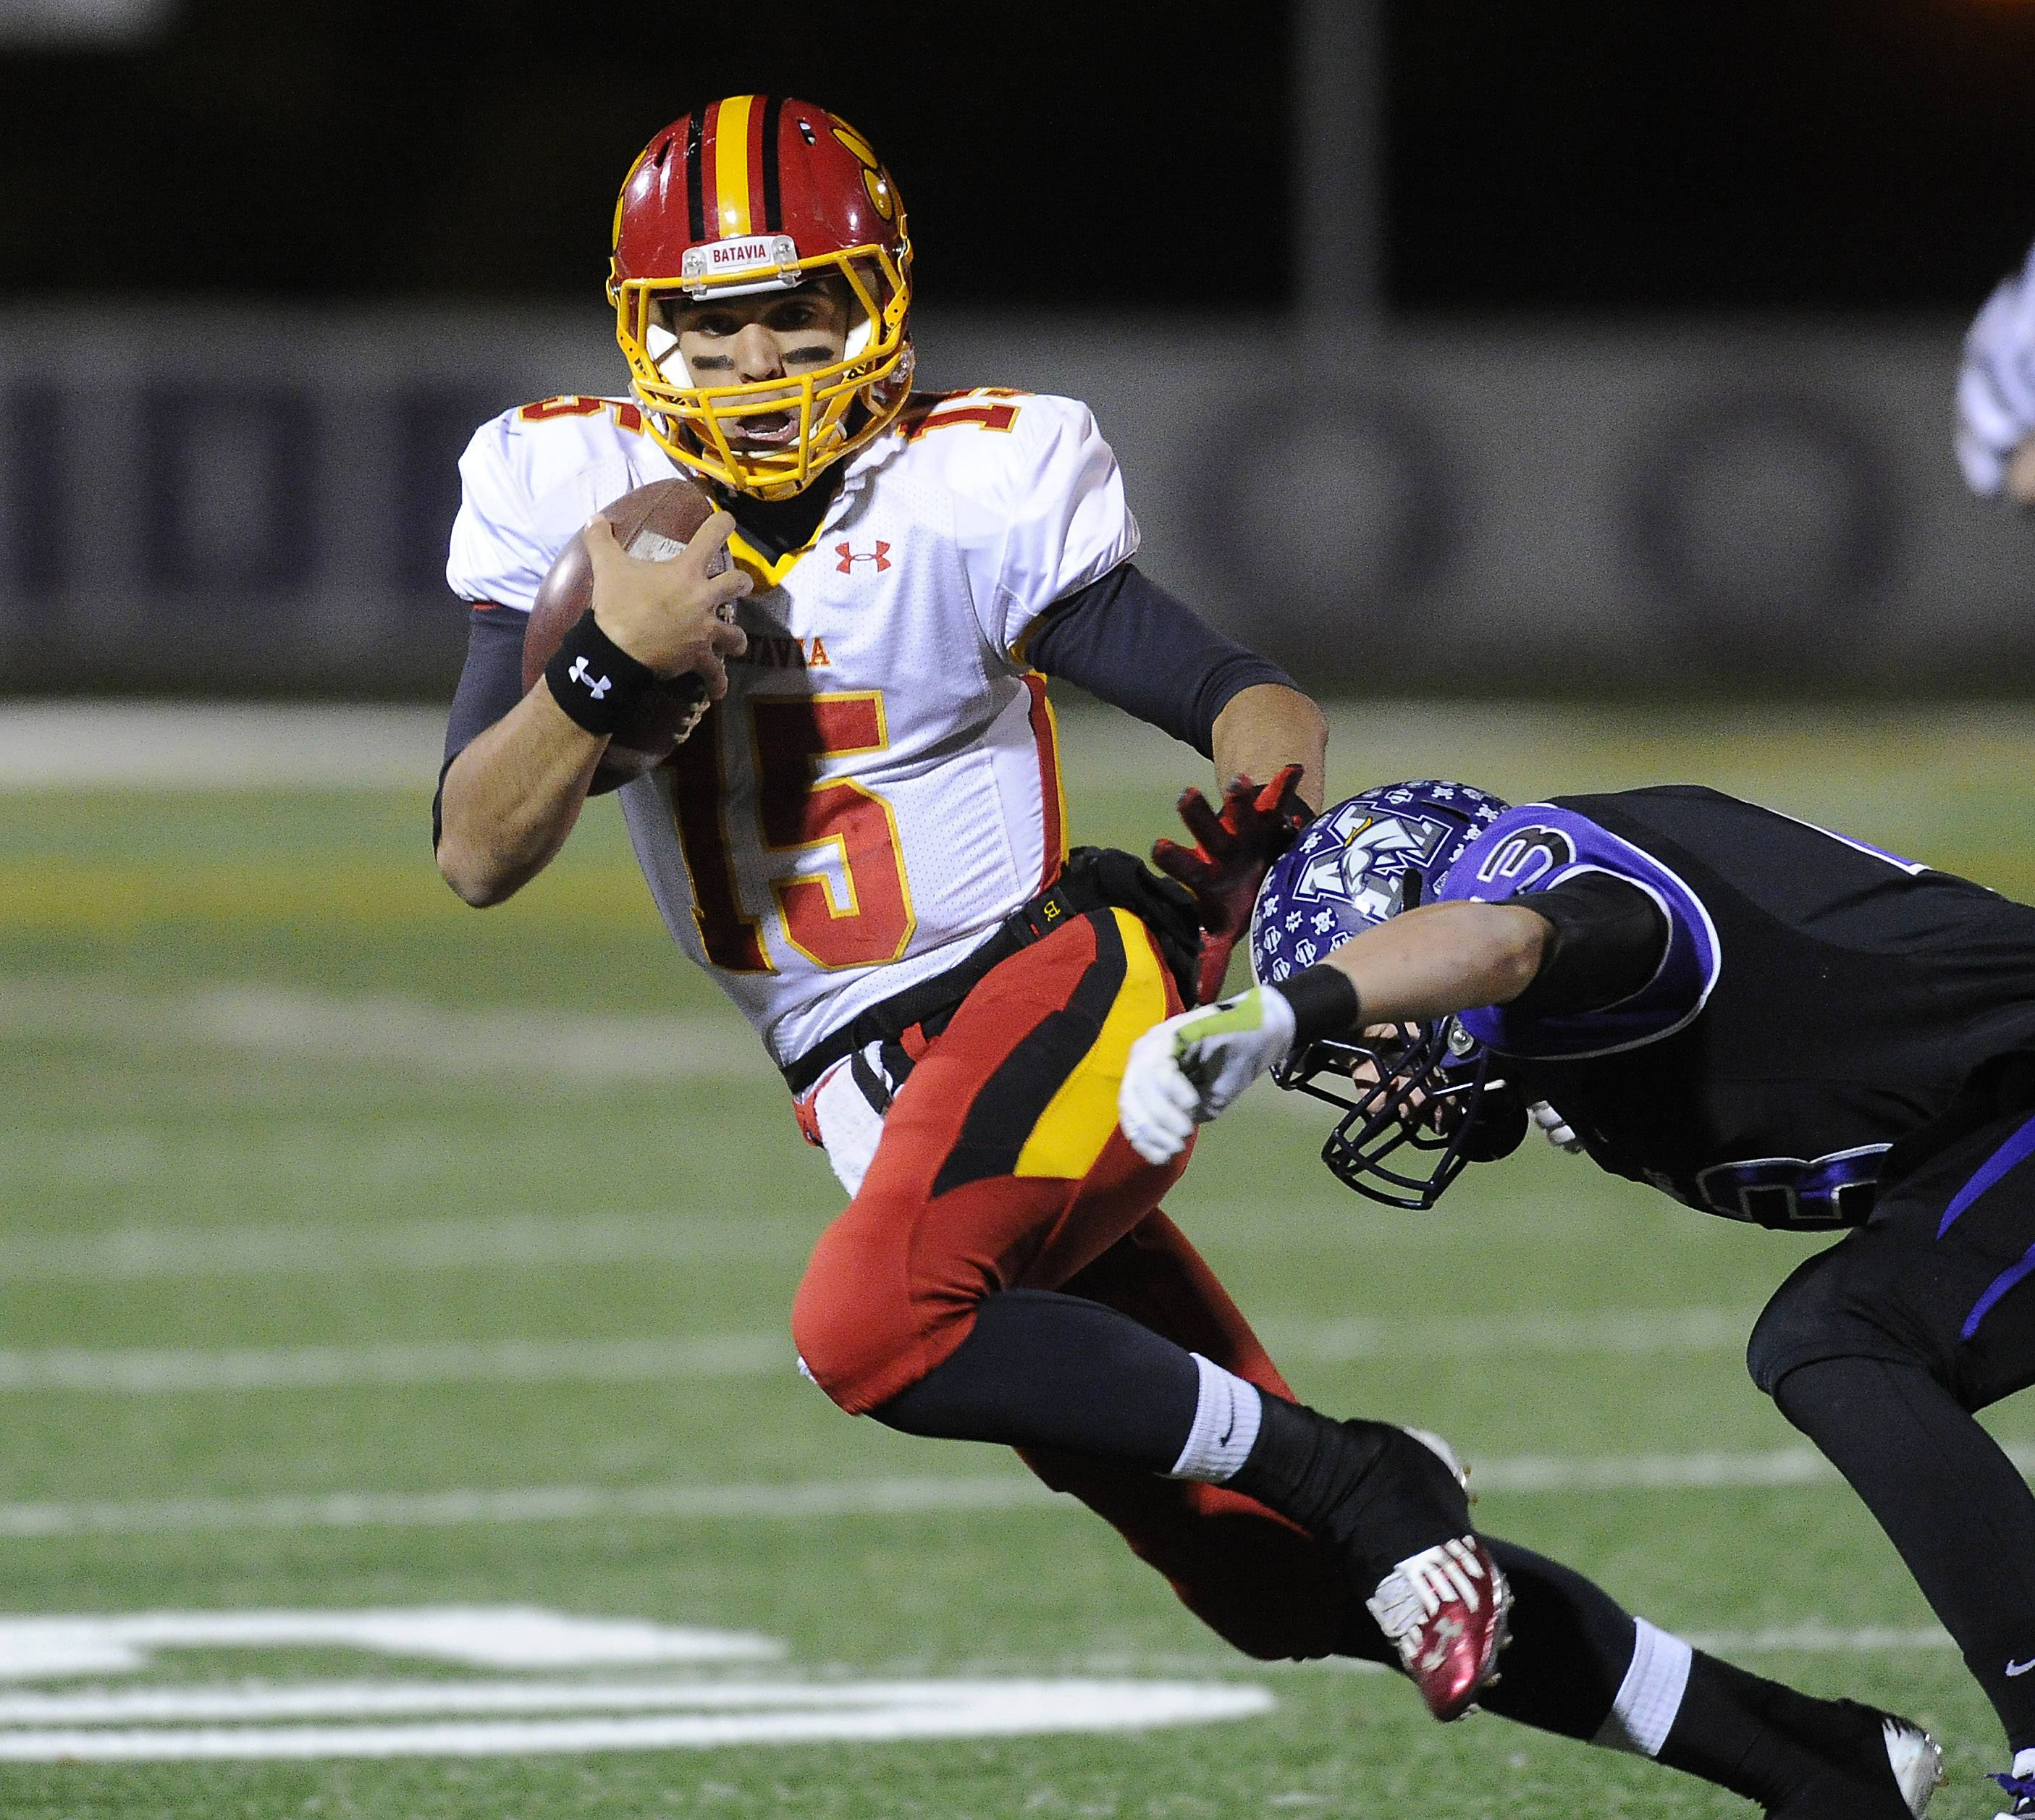 Rolling Meadows' Peyton Dezonna lays out to bring down Batavia quarterback Micah Coffey last season in Class 6A playoff action. Dezonna is one of two returning defensive starters for the Mustangs.